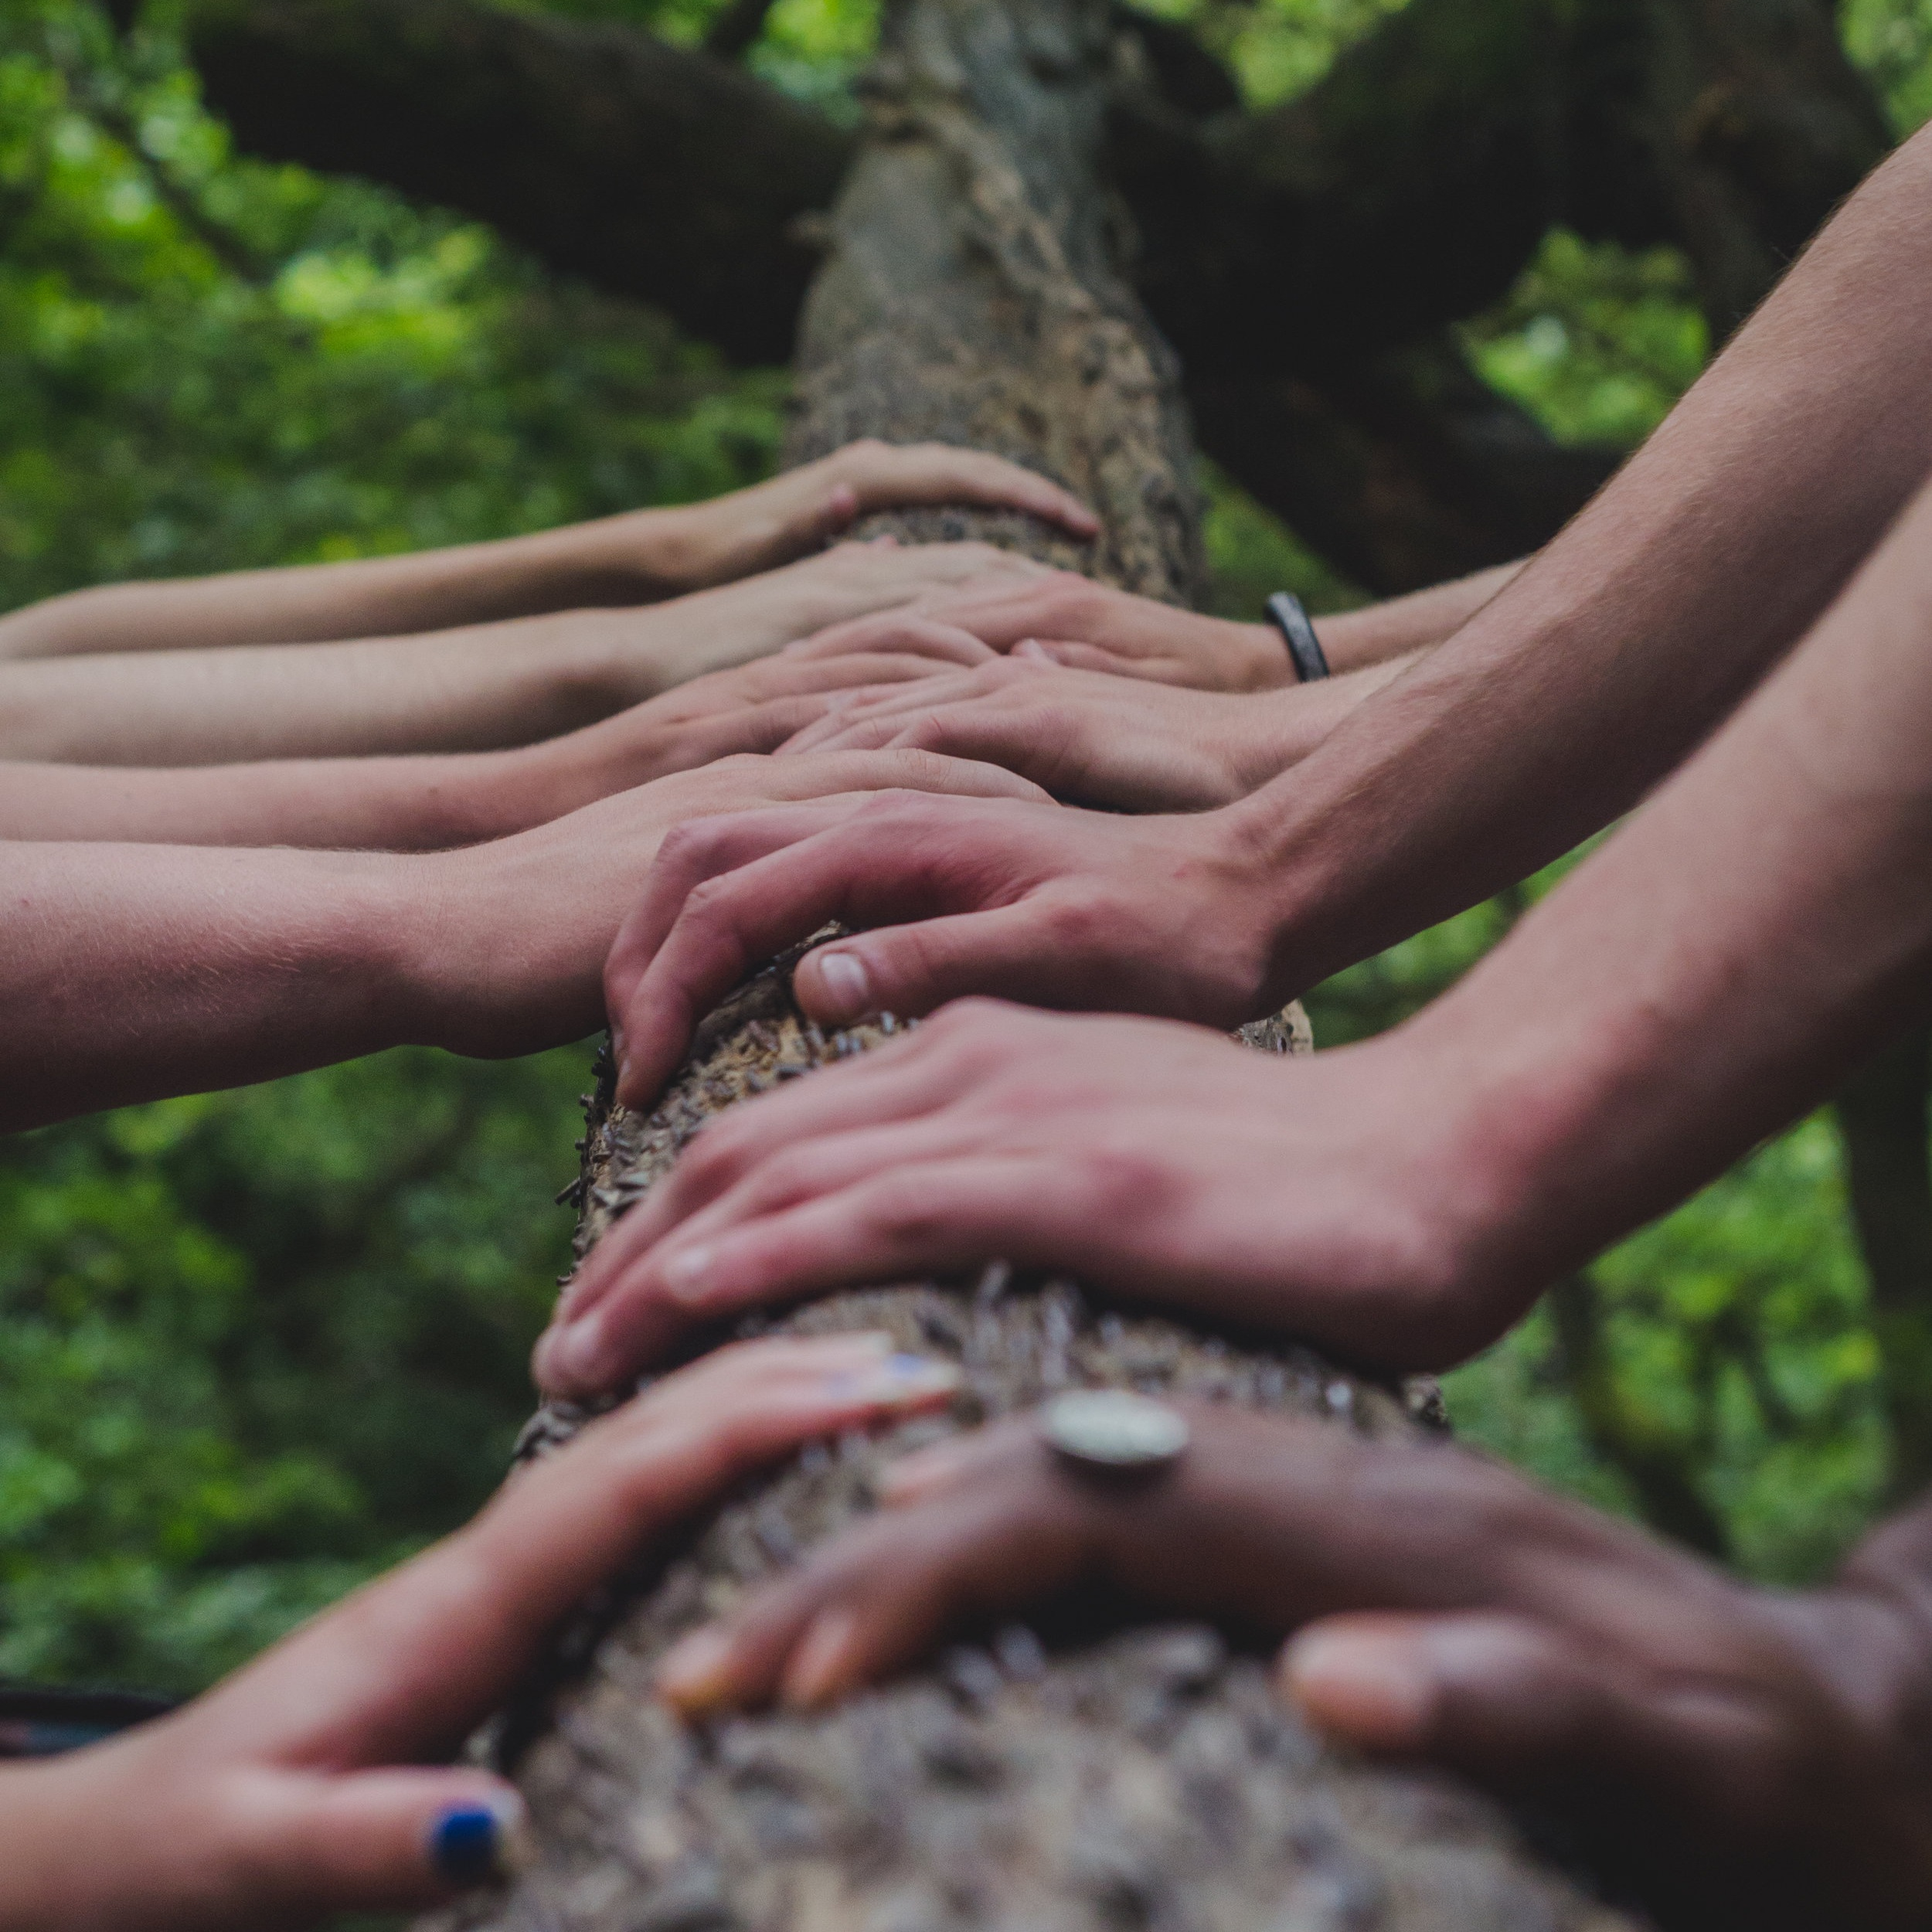 Reiki Share - All are welcome. No Reiki experience requiredDate: October 20th at 2:00-3:30 pmPrice: Love Offering appreciated for use of space but not a requirement